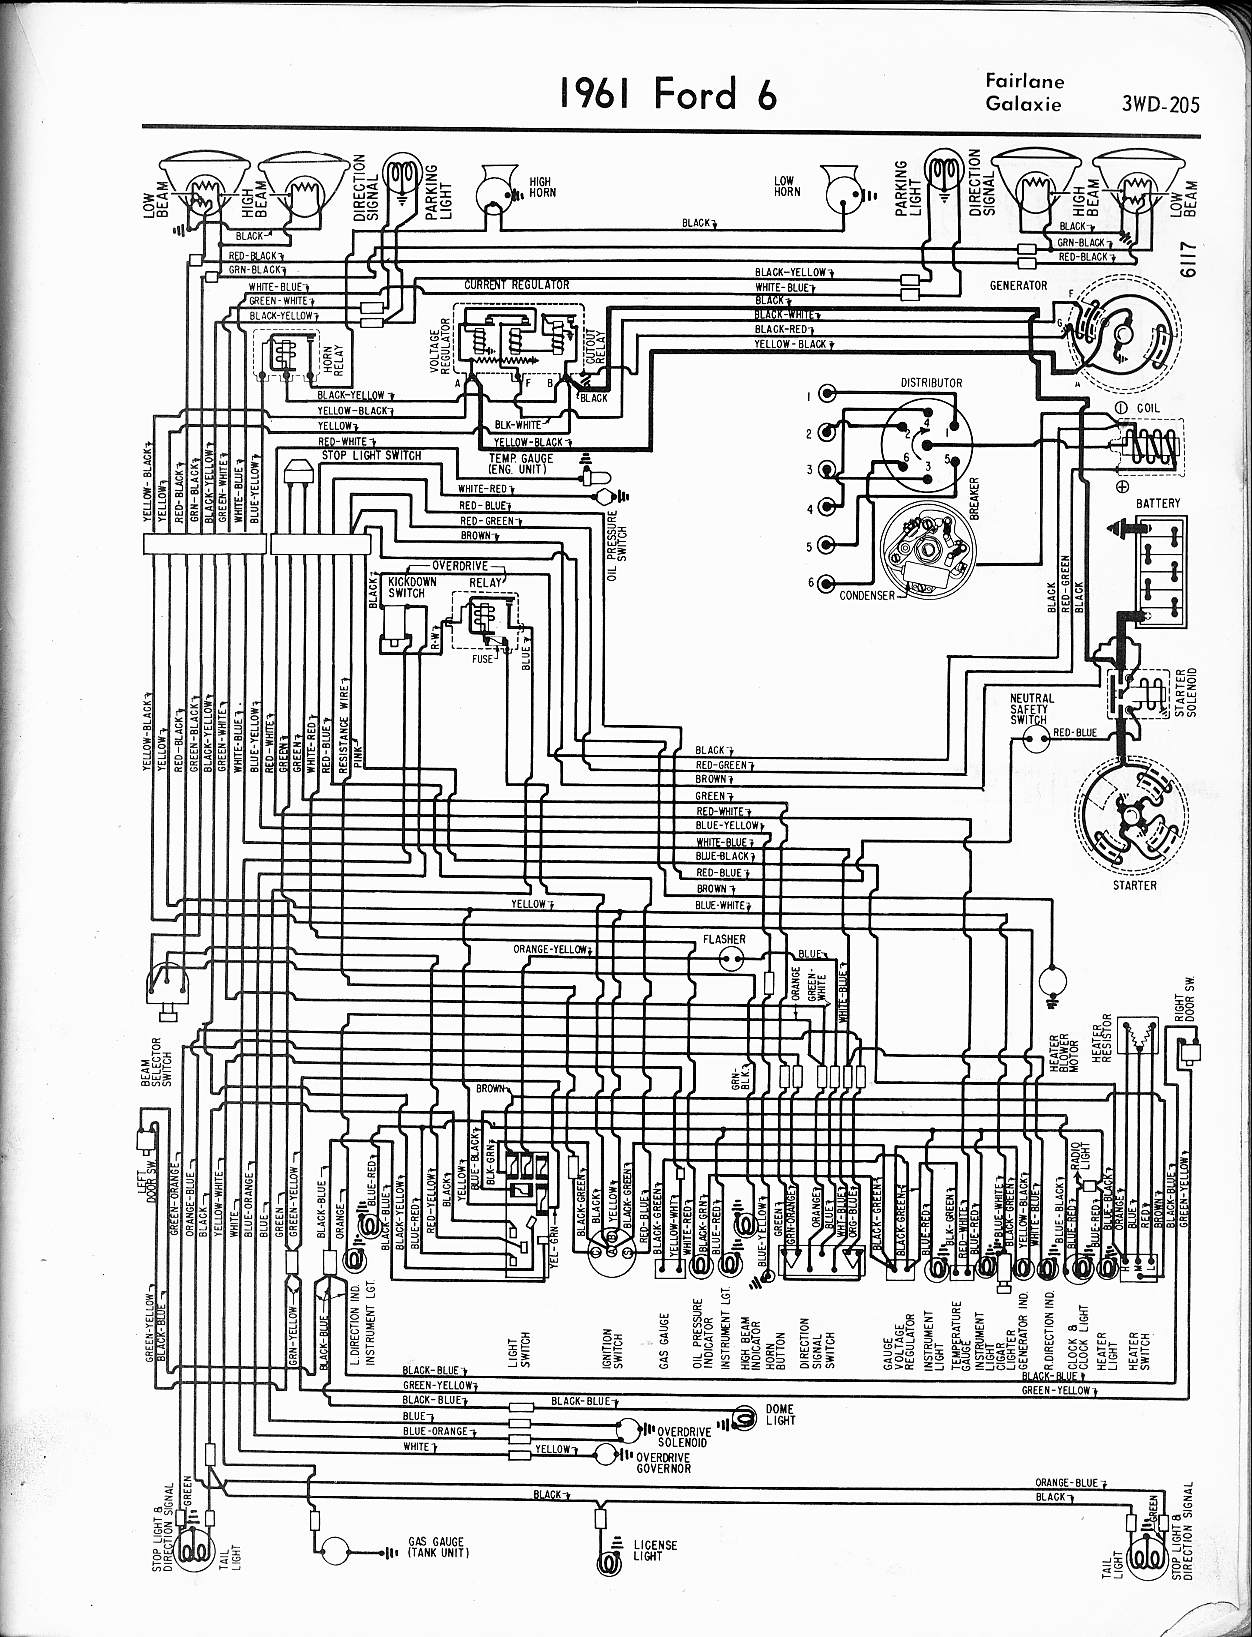 MWire5765 205 wiring diagram model a ford the wiring diagram readingrat net Ford E 350 Wiring Diagrams at panicattacktreatment.co